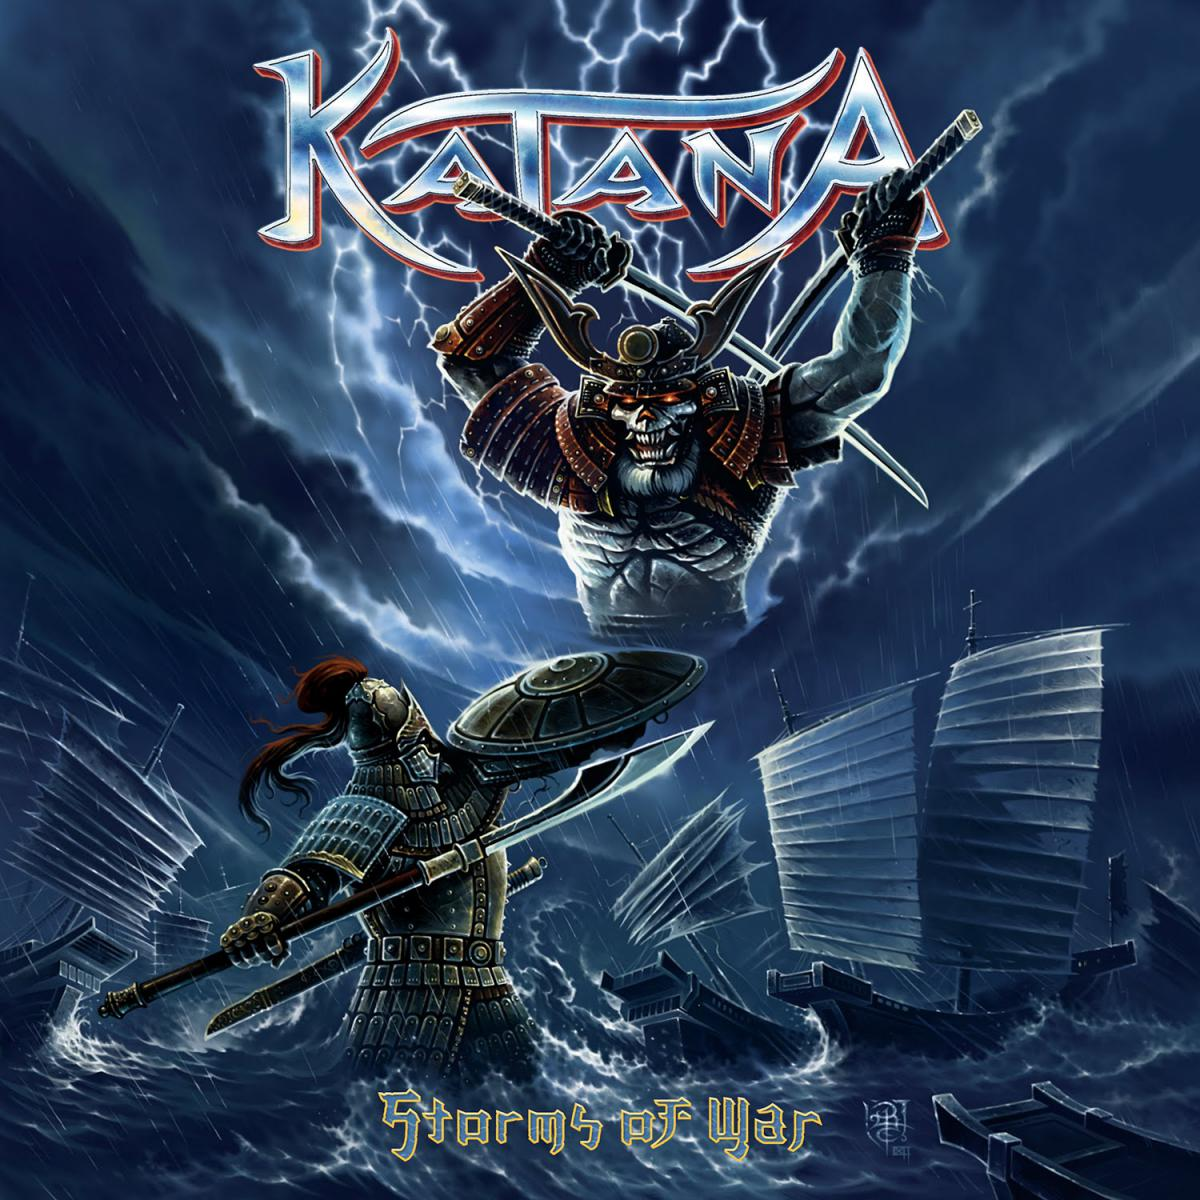 Katana - Storms of War 2012